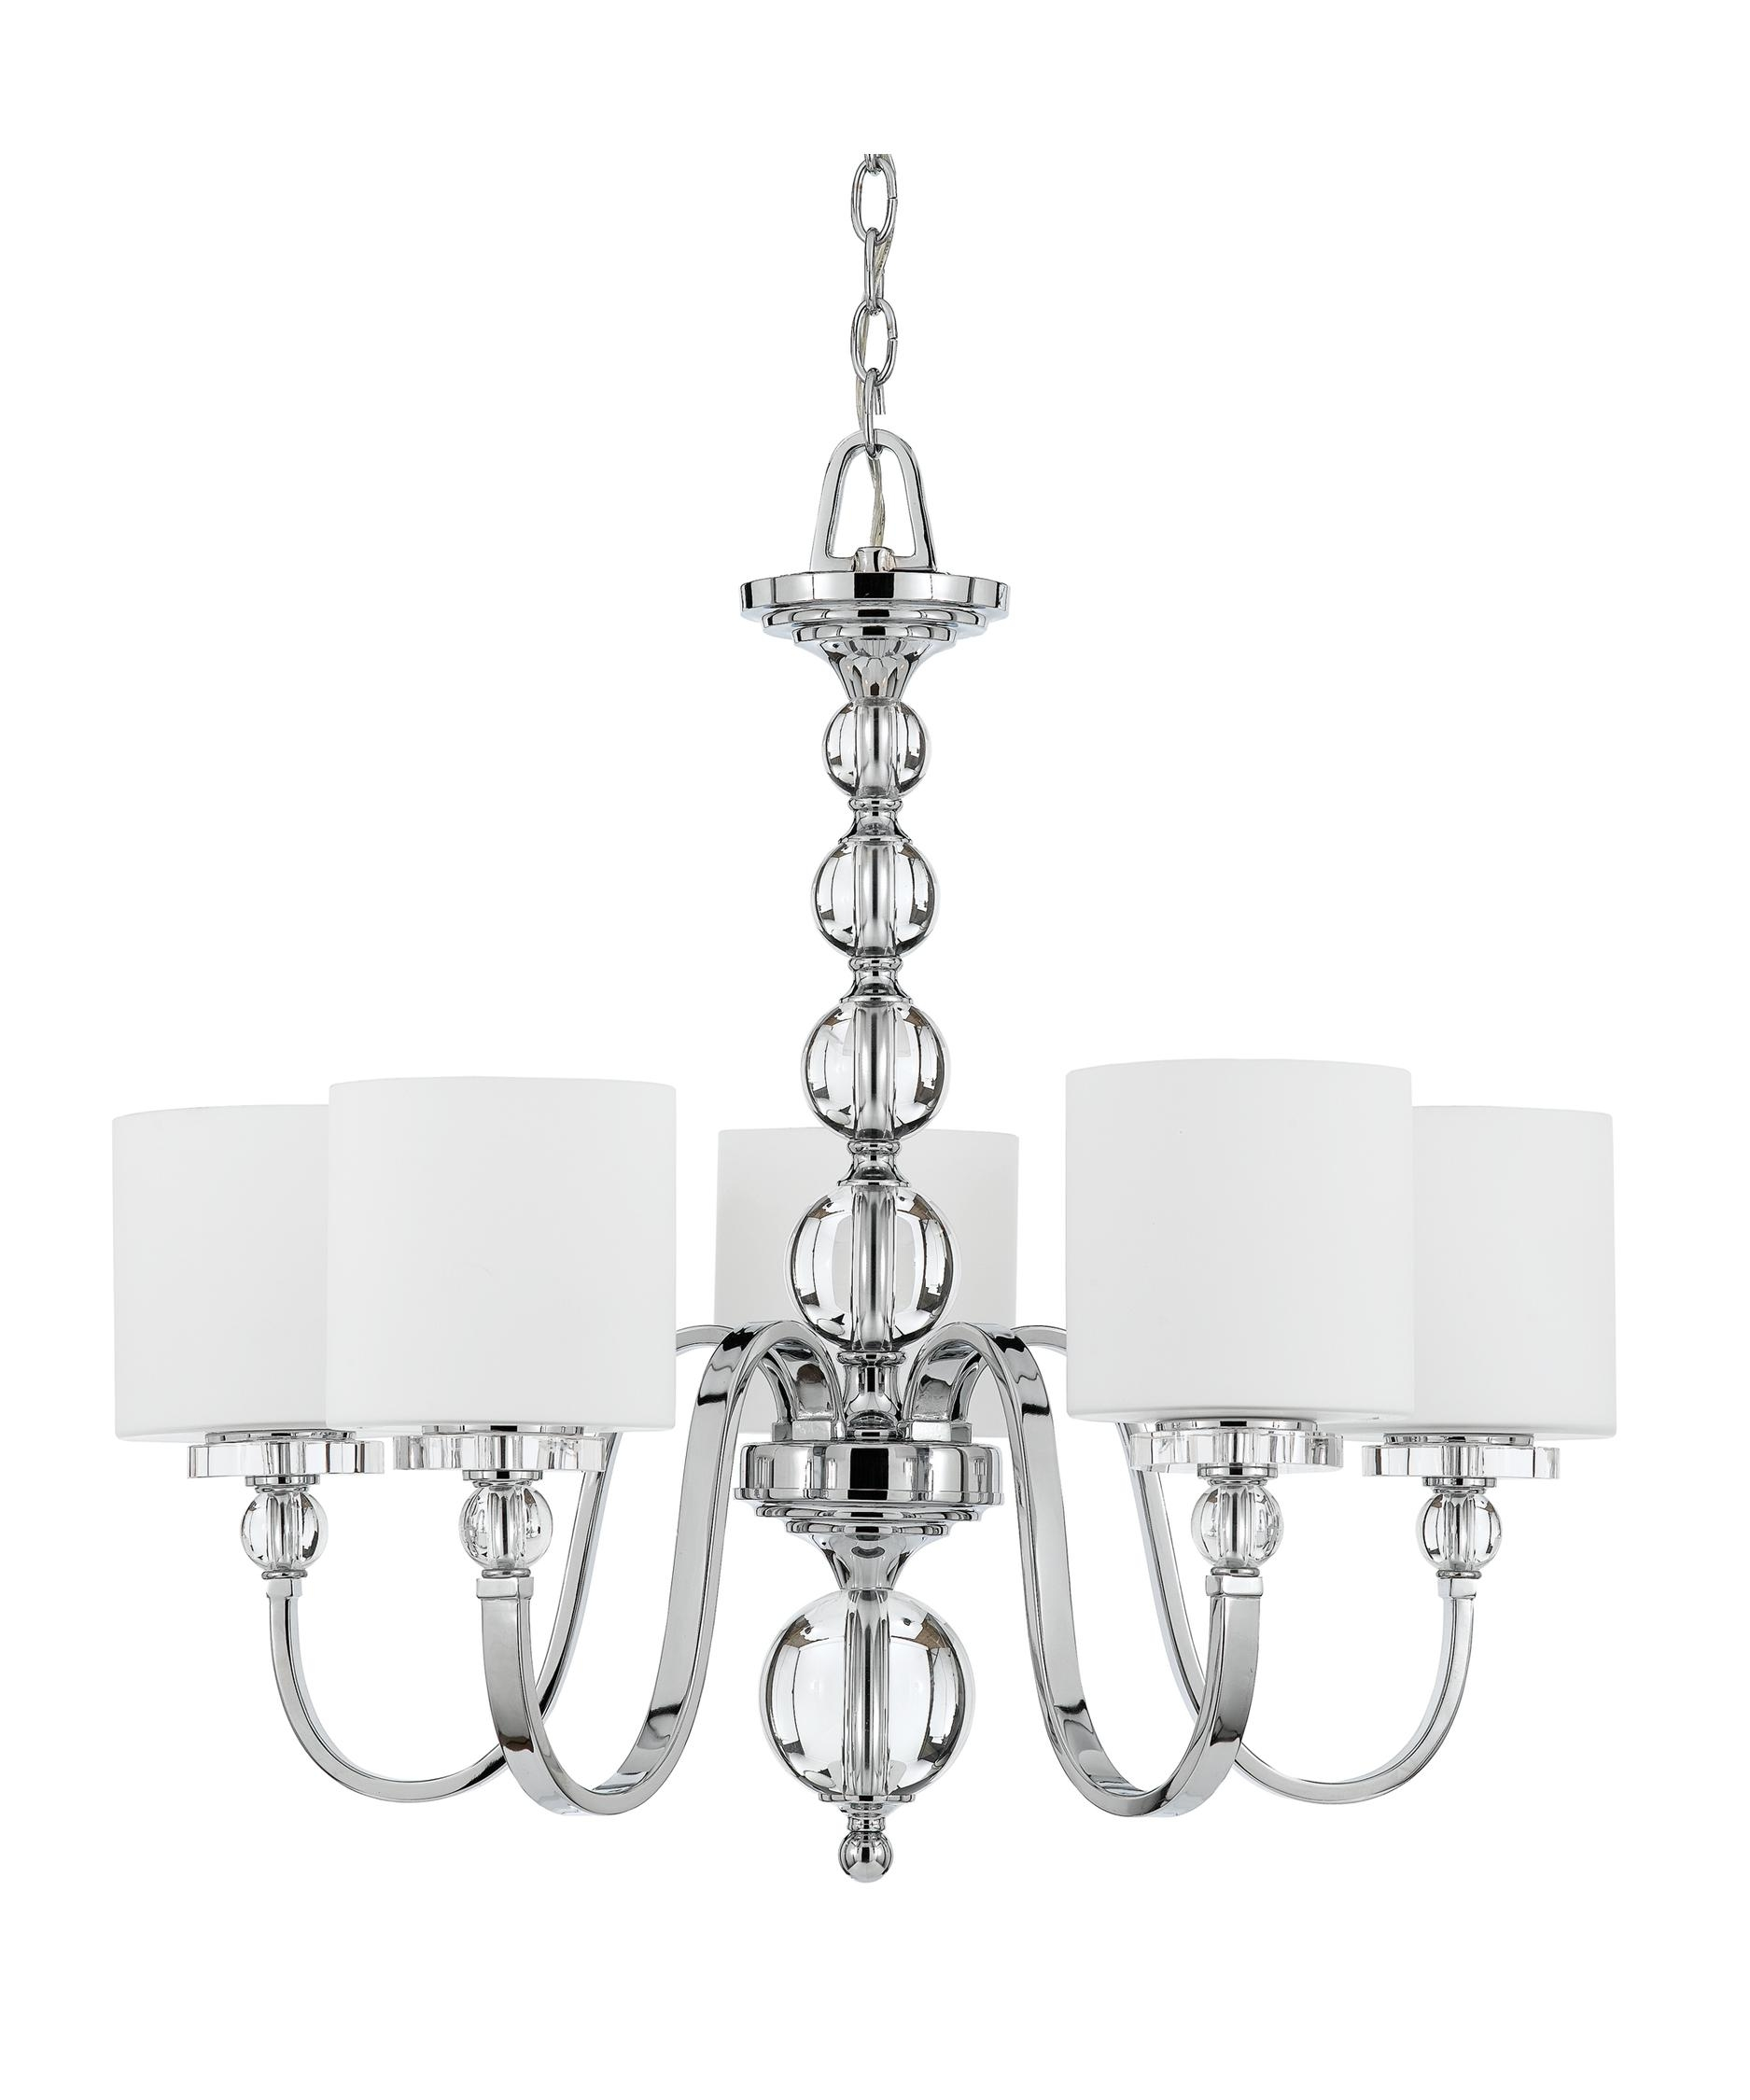 Quoizel Dw5005 Downtown 28 Inch Wide 5 Light Chandelier Capitol With Chrome And Glass Chandeliers (Image 21 of 25)